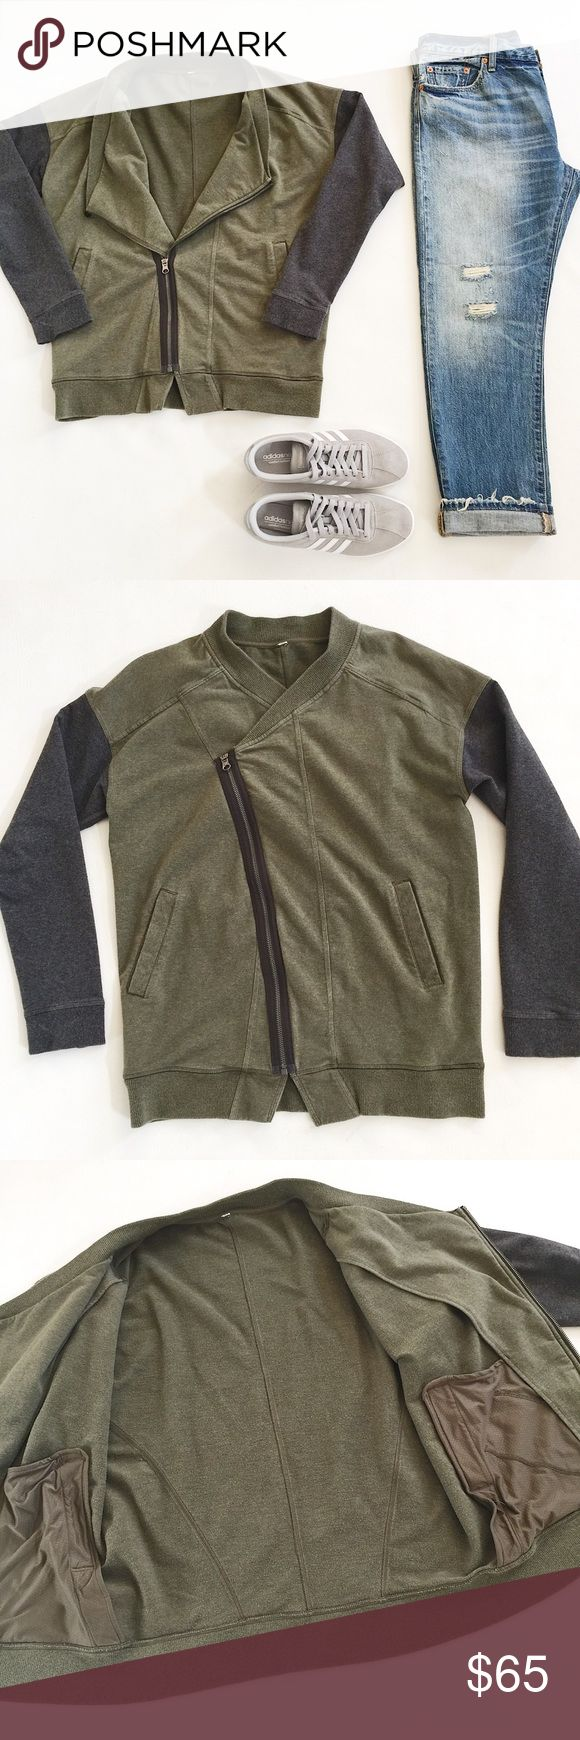 """Lululemon Mula Jacket Lululemon Mula Jacket in olive and gray featuring asymmetrical zip and draped front.  Lightweight but cozy!  Great for any workout or a lazy day!  Pre-loved but in great condition.  No holes, stains or tears.  Signs of normal wash and wear.  Size tag cut out, fits like a Large.  Please verify measurements.  Last pic stock photo, used to show fit.  Measurements laying flat: Armpit to armpit: 21"""" Waist (across): 20"""" Total length: 25.5"""" Sleeve length: 24"""" lululemon…"""